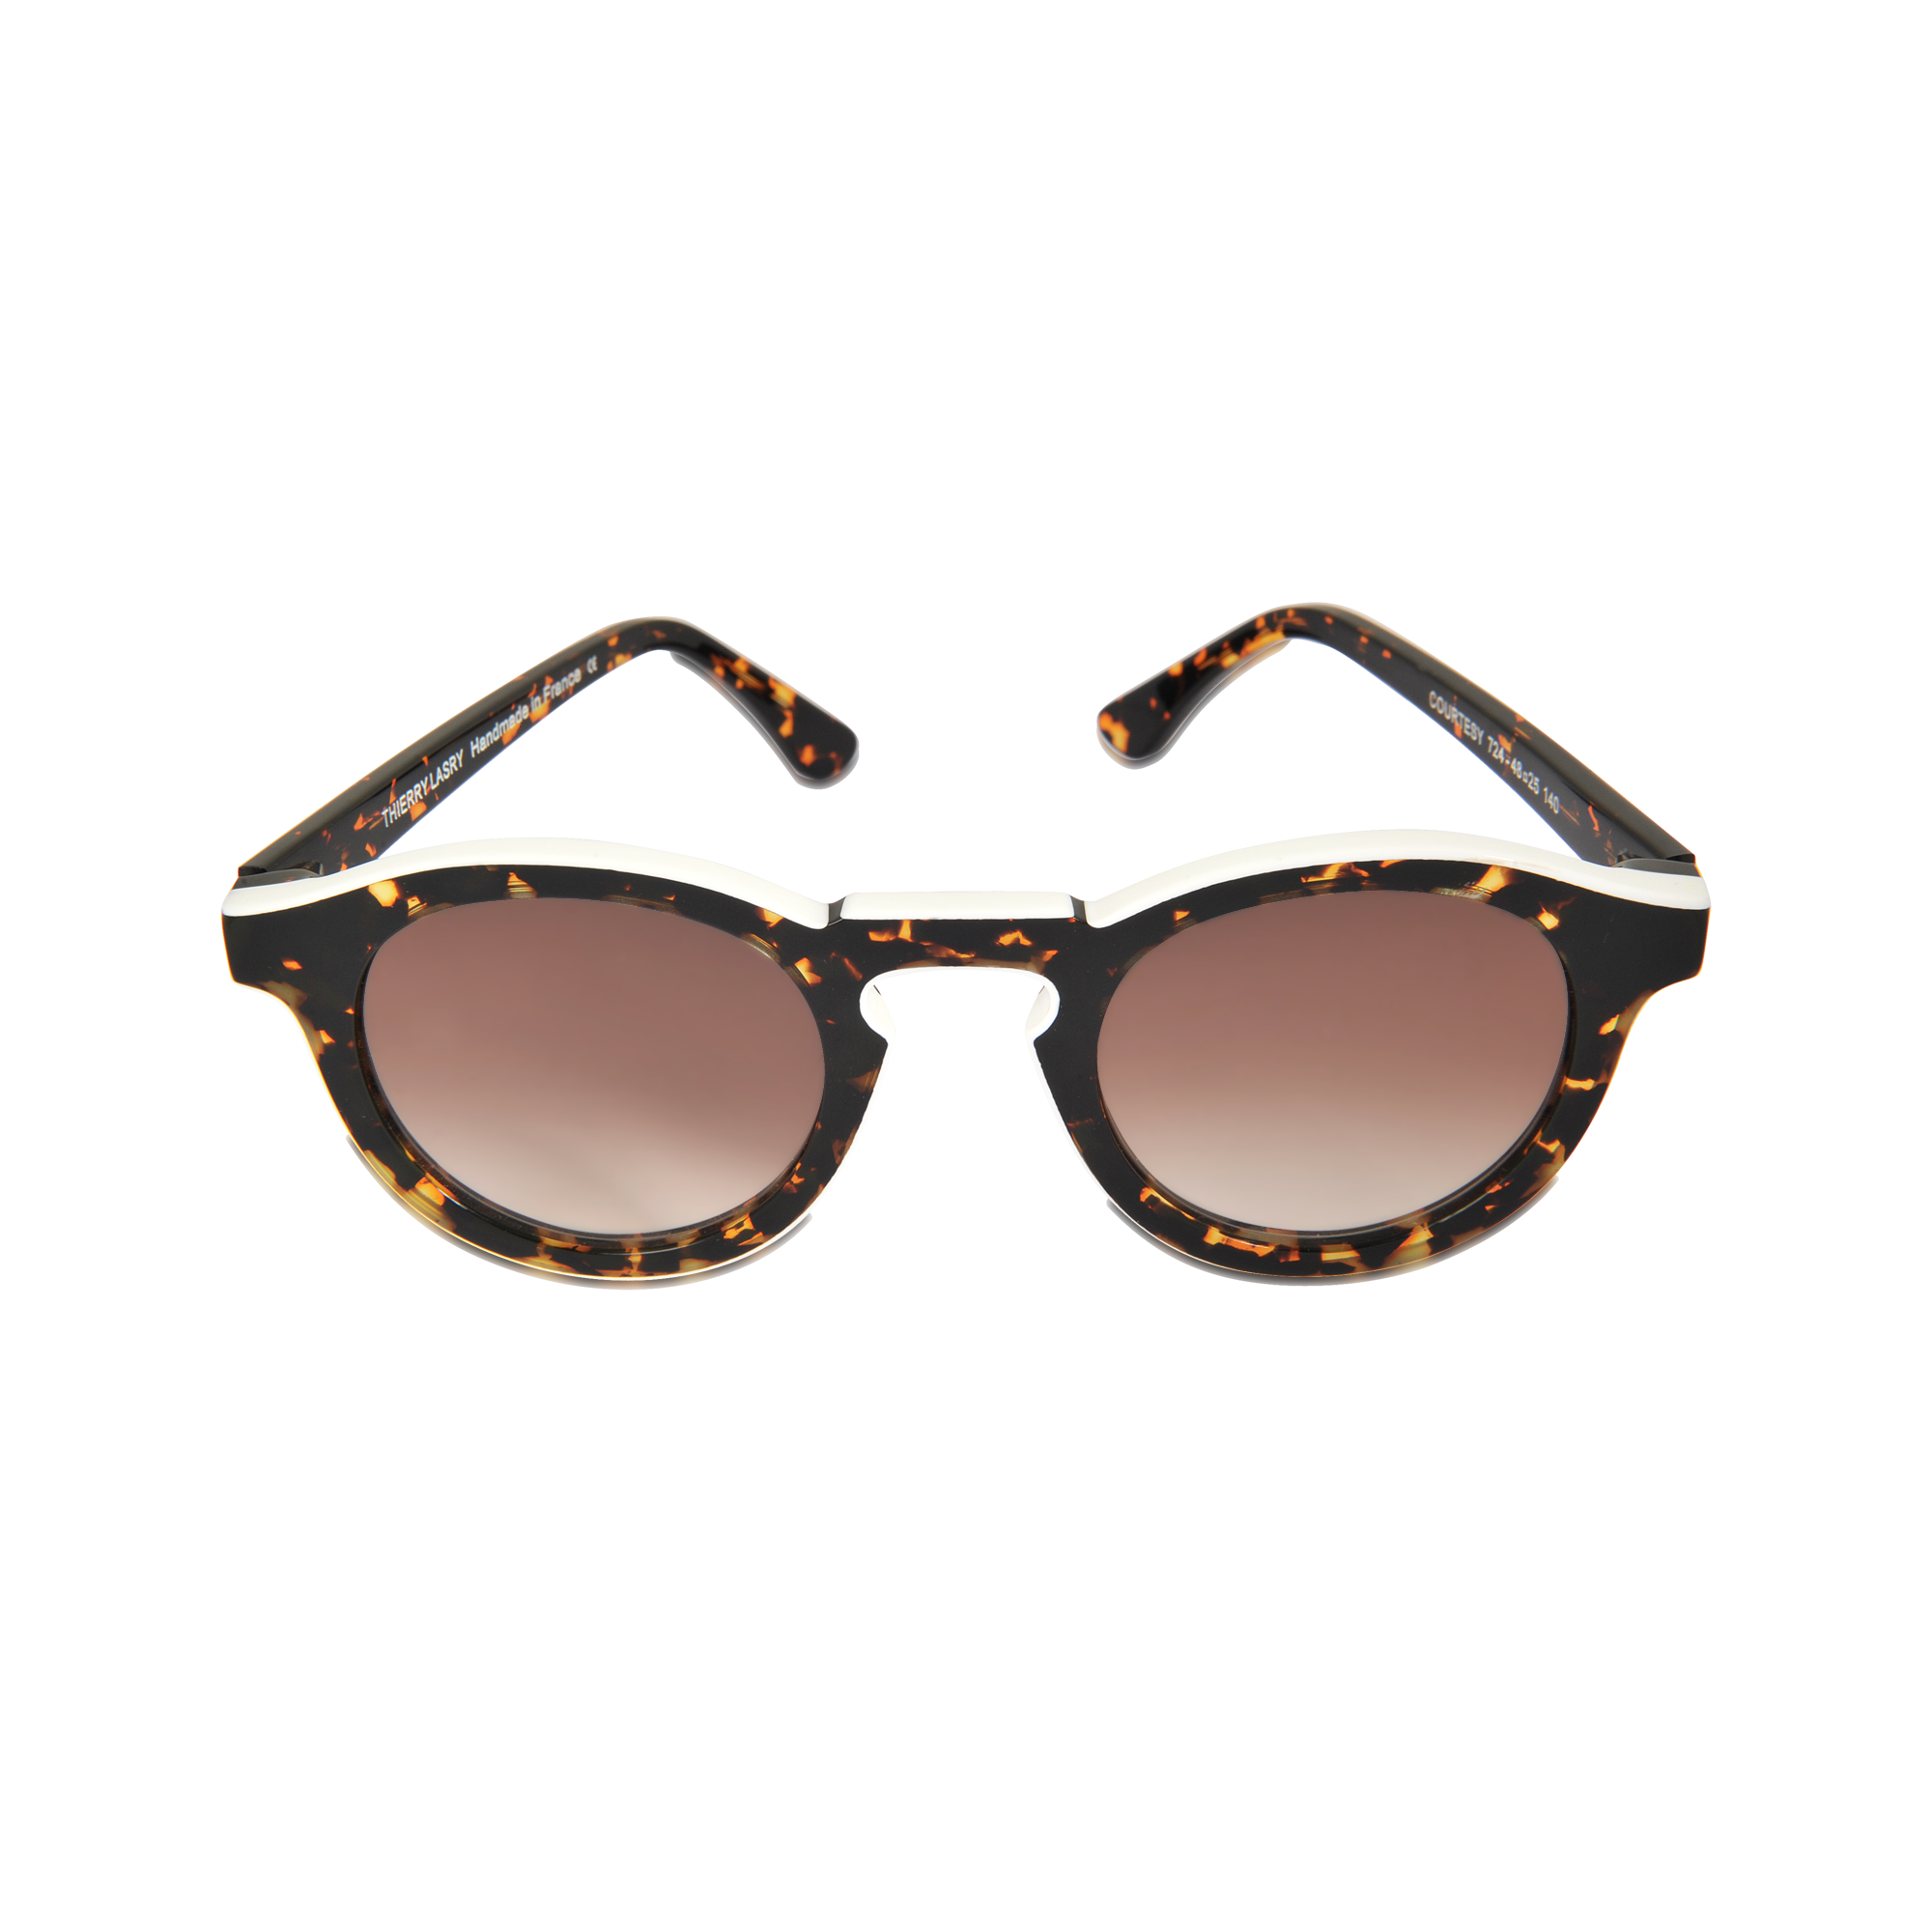 THIERRY LASRY Sunglassses Courtesy 724